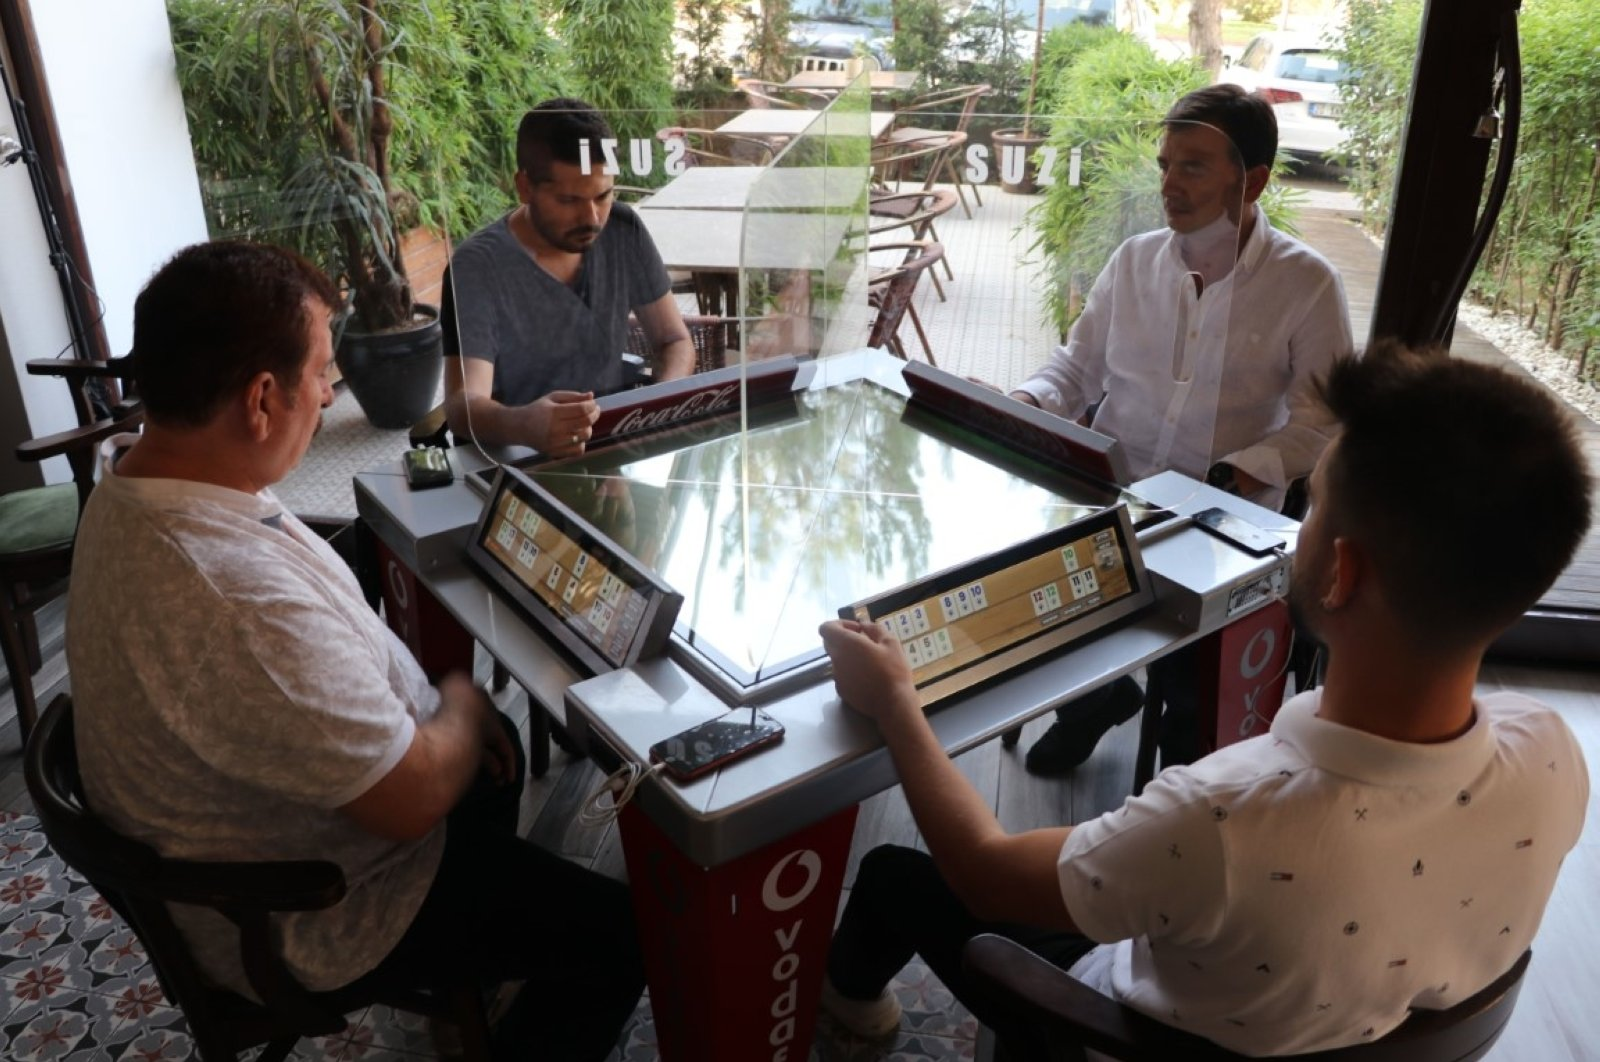 People play okey at the digital table, in Denizli, western Turkey, Sept. 23, 2020. (DHA Photo)